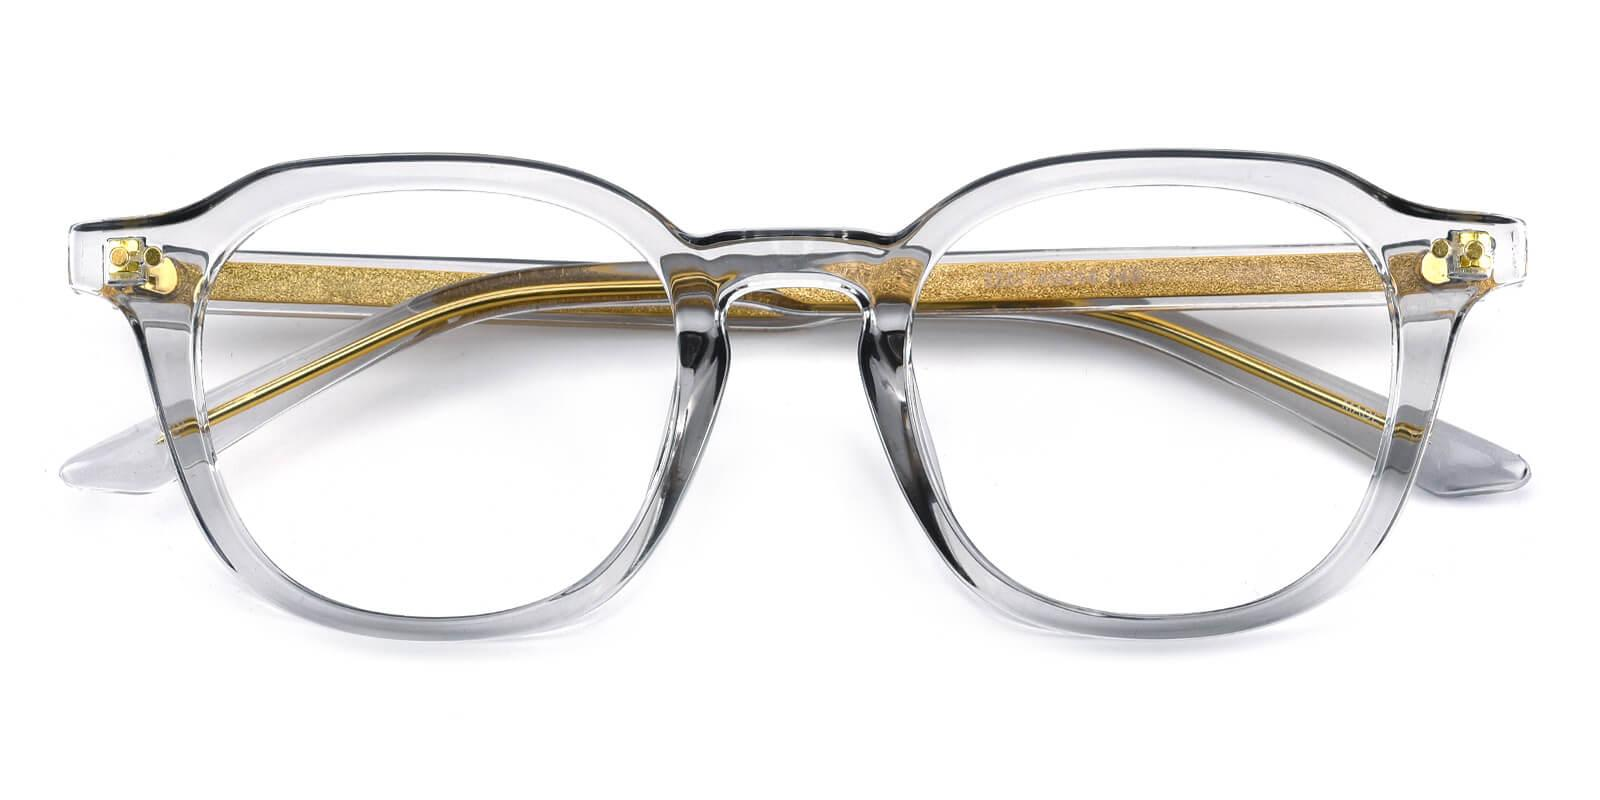 Dapper-Gray-Round-Acetate-Eyeglasses-detail